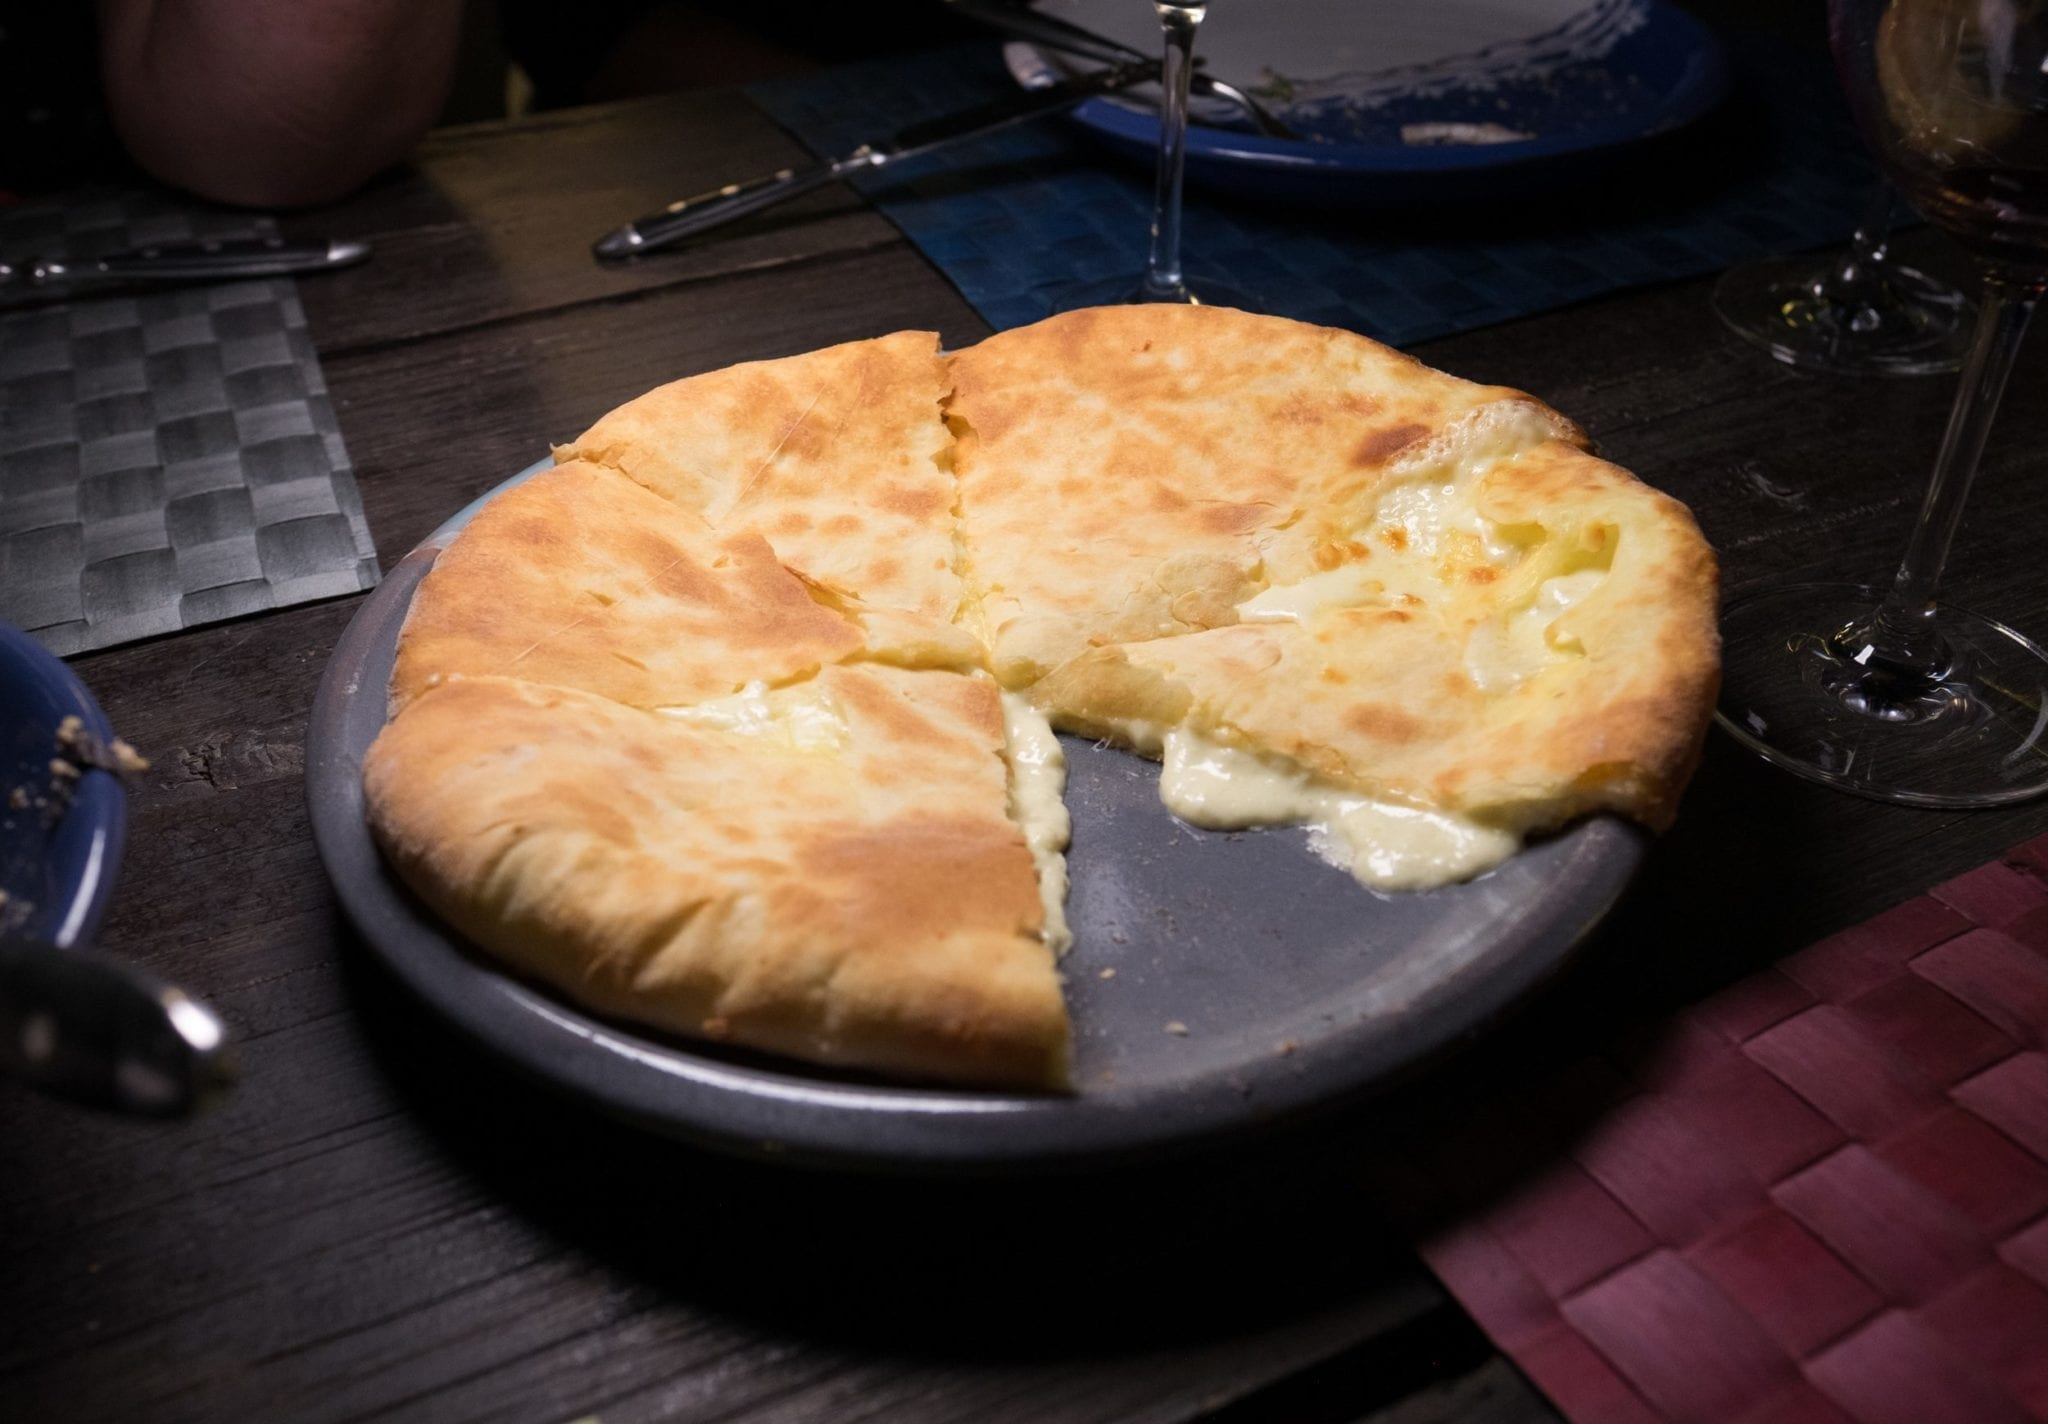 A khachapuri (Georgian cheese pie) with one slice missing, the cheese oozing out.